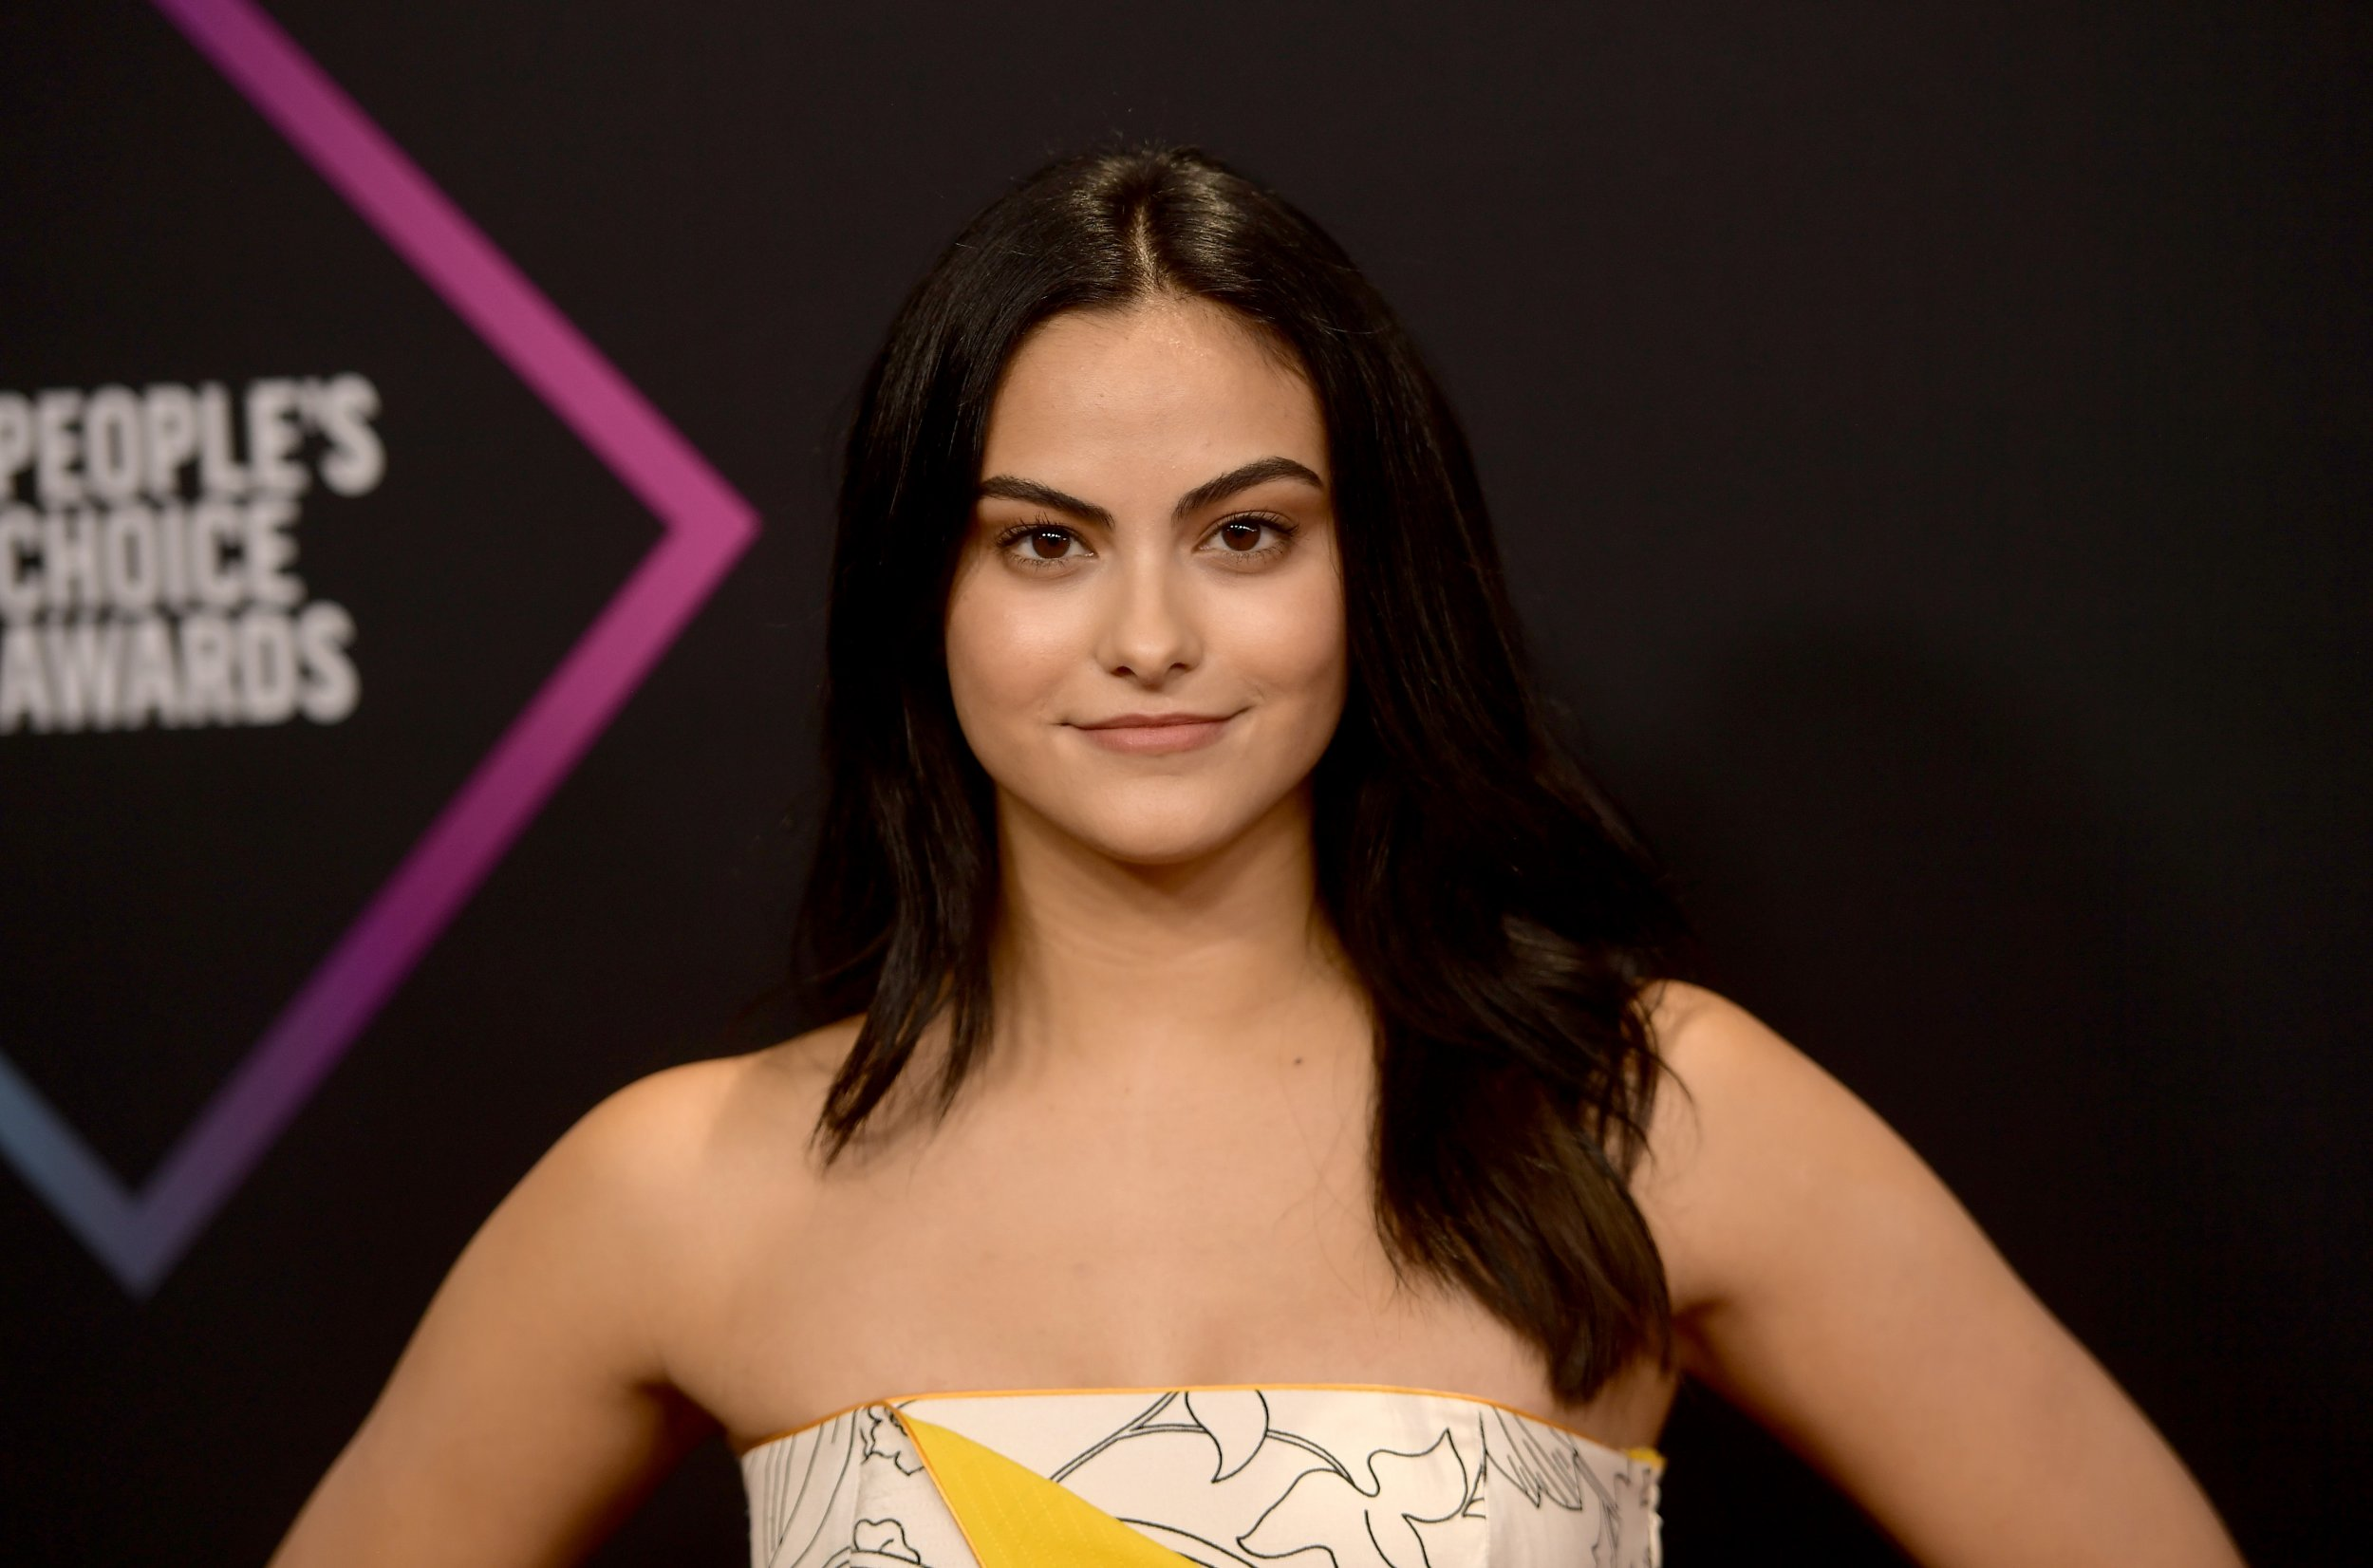 Camila Mendes on 'The New Romantic'